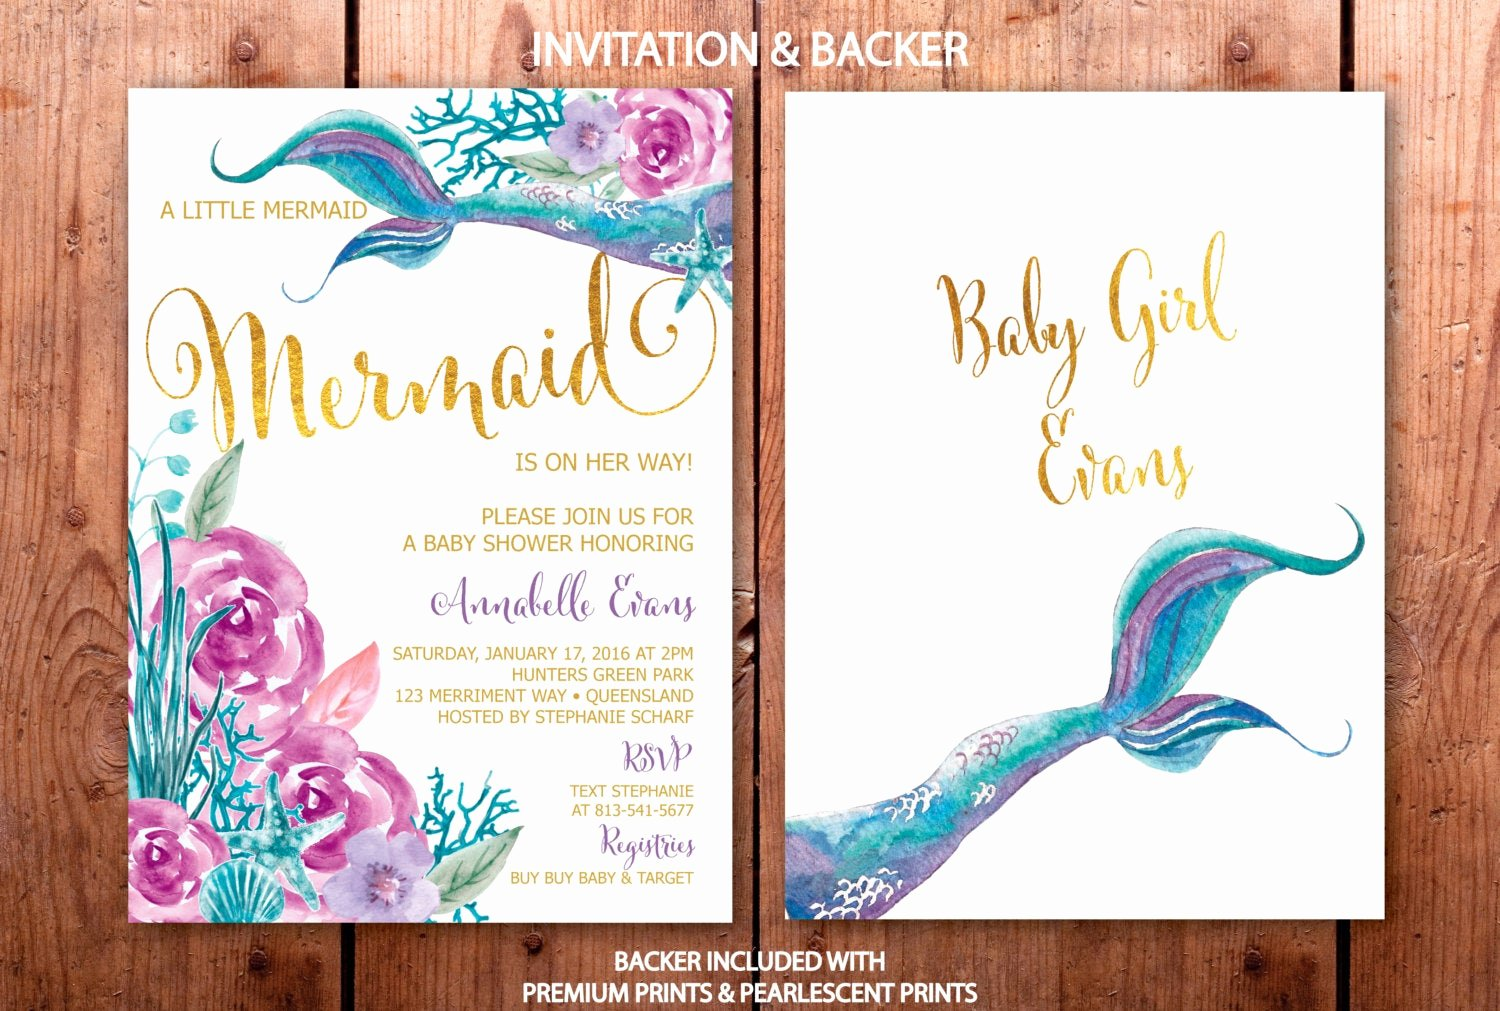 Mermaid Baby Shower Invitations Fresh Mermaid Baby Shower Invitation Under the Sea Invitation